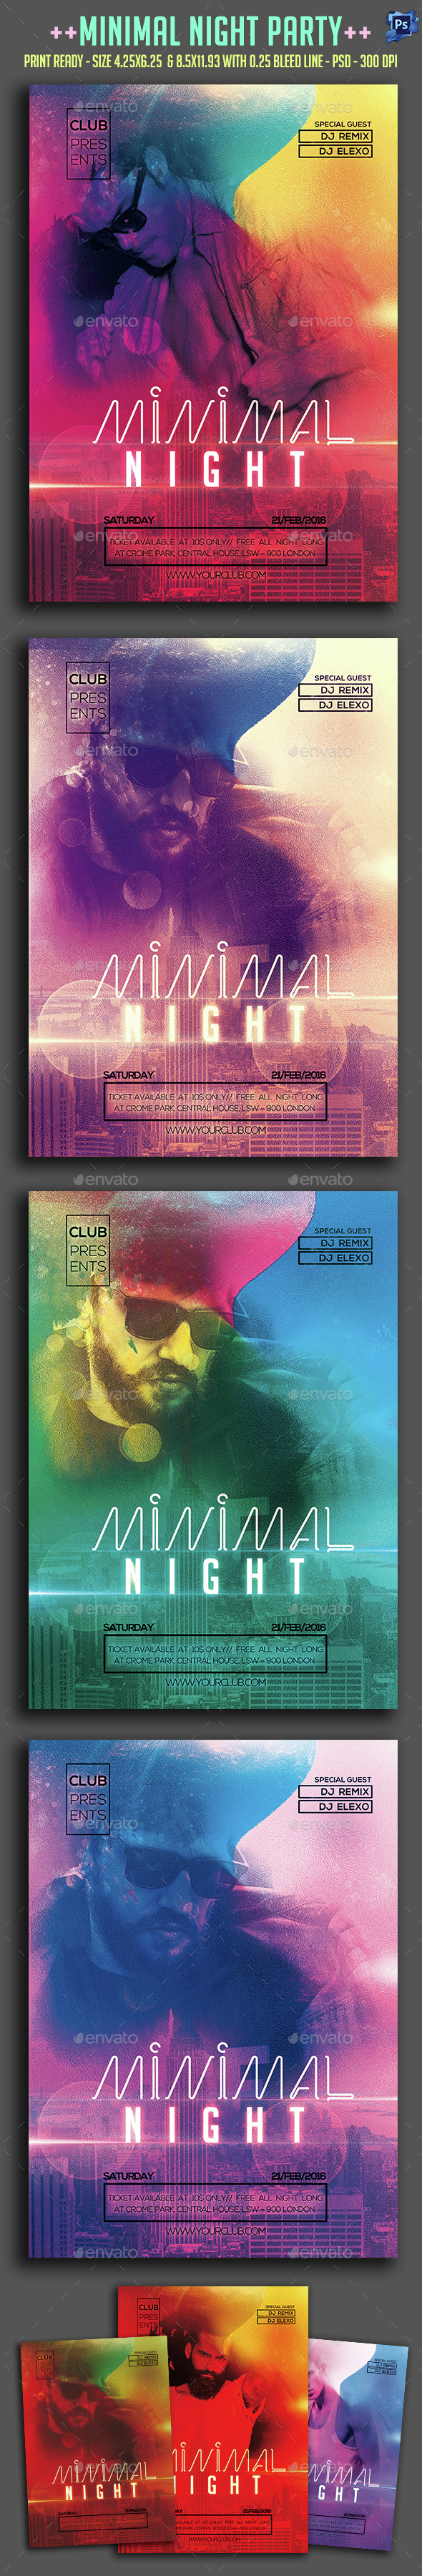 Minimal Night Party Flyer  - Clubs & Parties Events